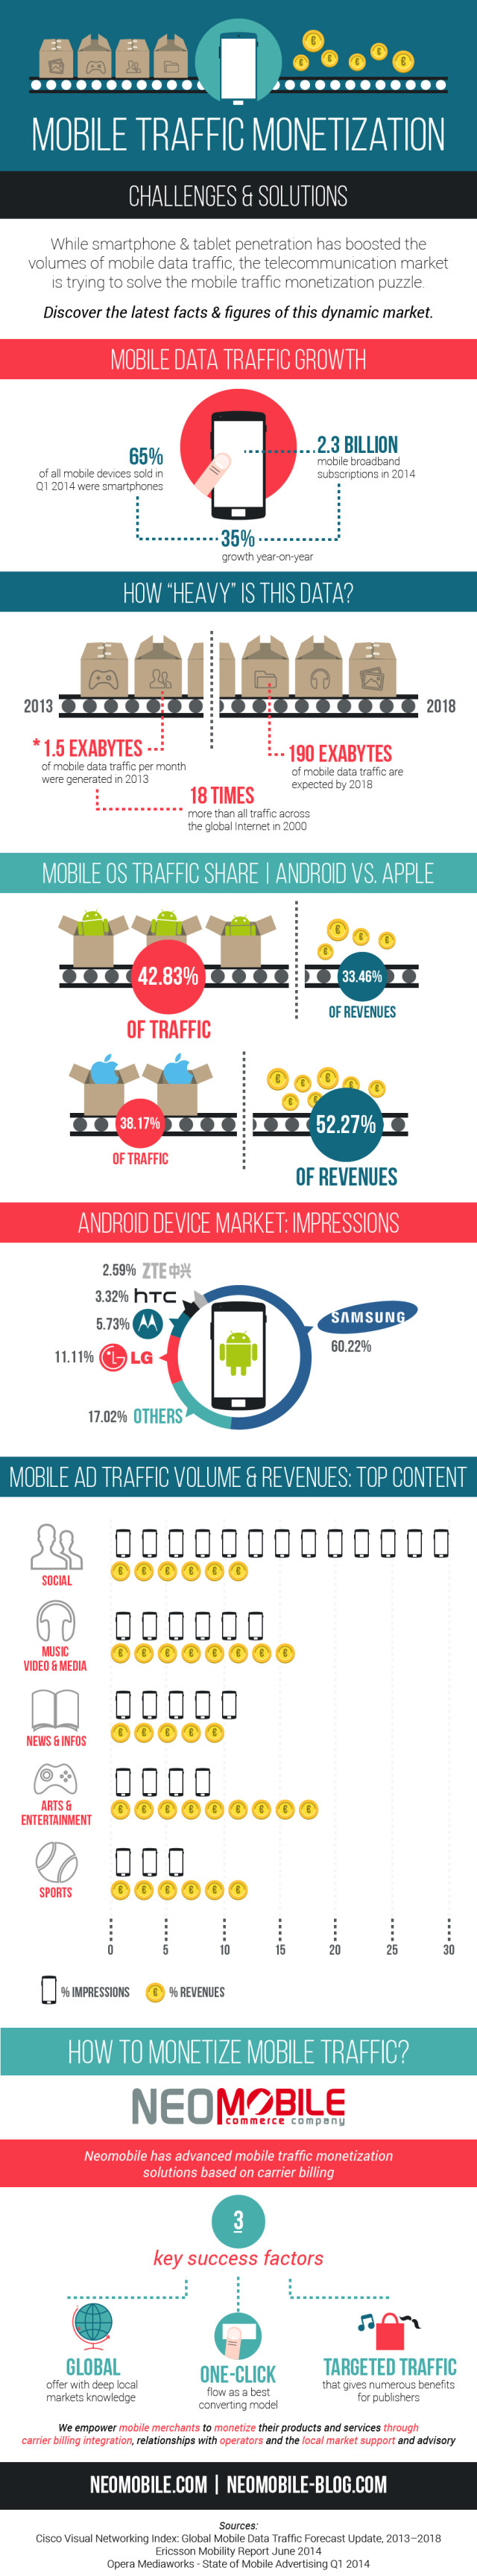 mobile-traffic-monetization-infographic-neomobile